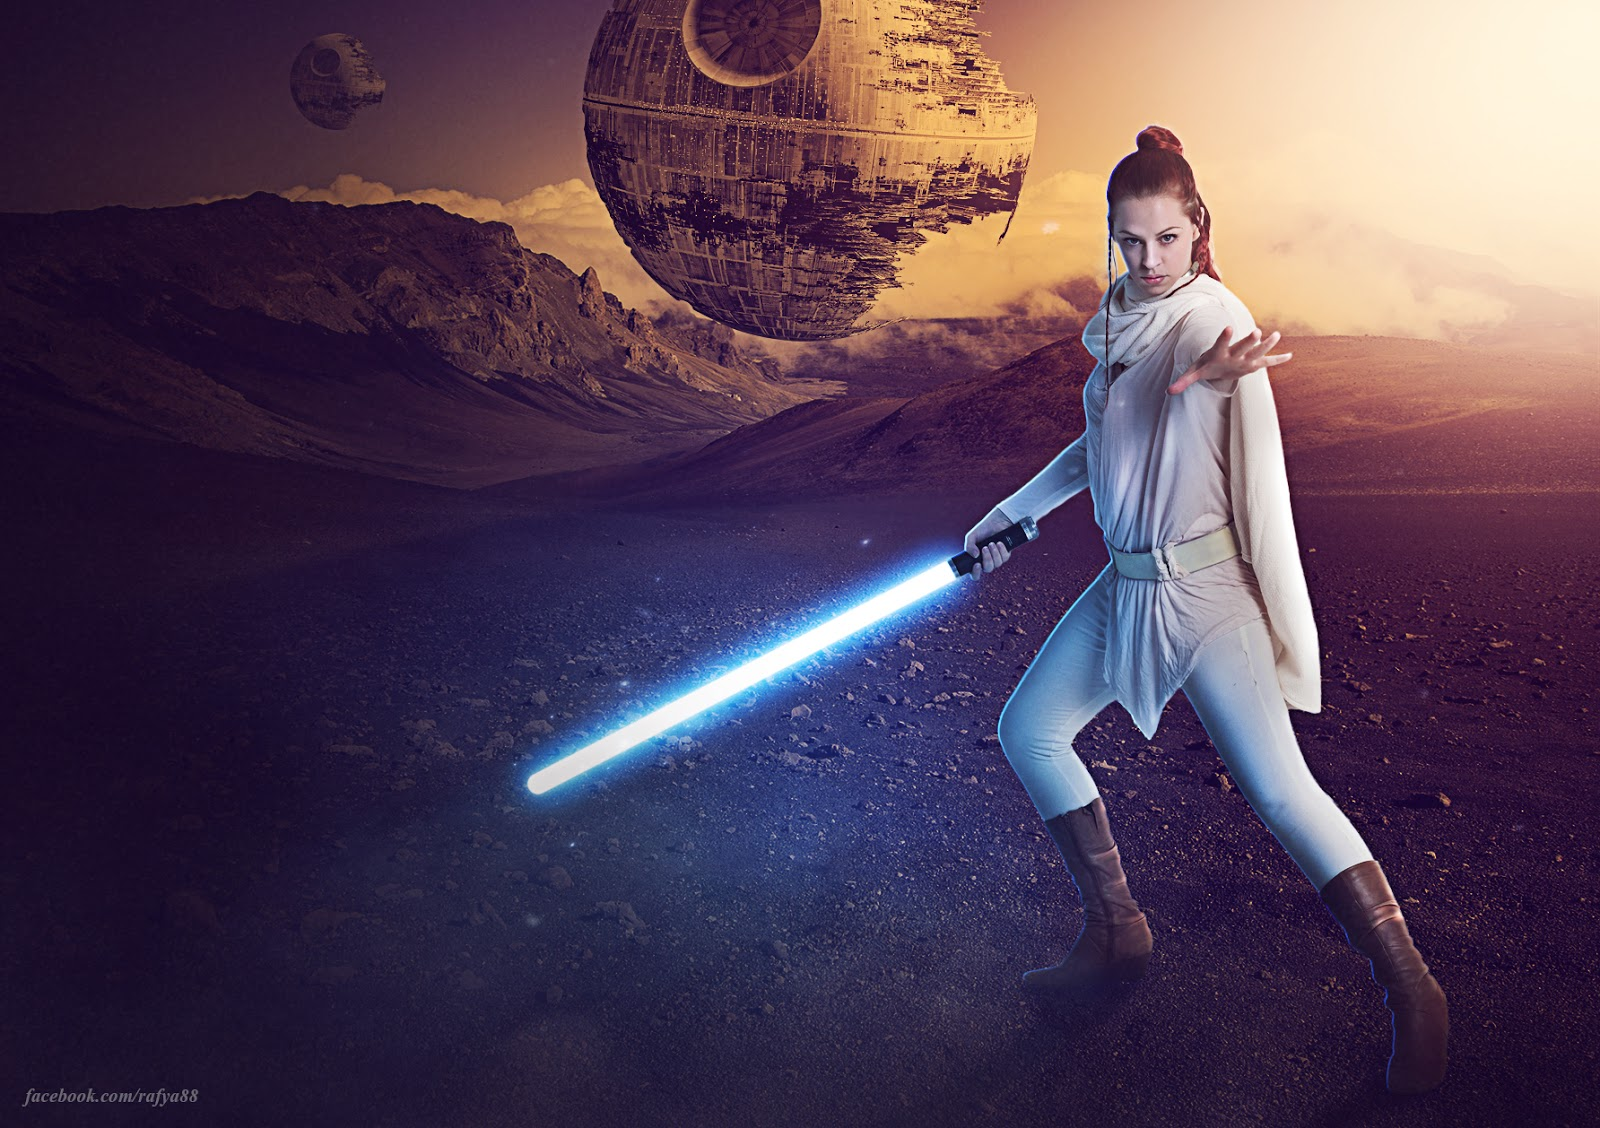 How to make star wars photo scene in photoshop rafy a how to make star wars photo scene in photoshop baditri Images